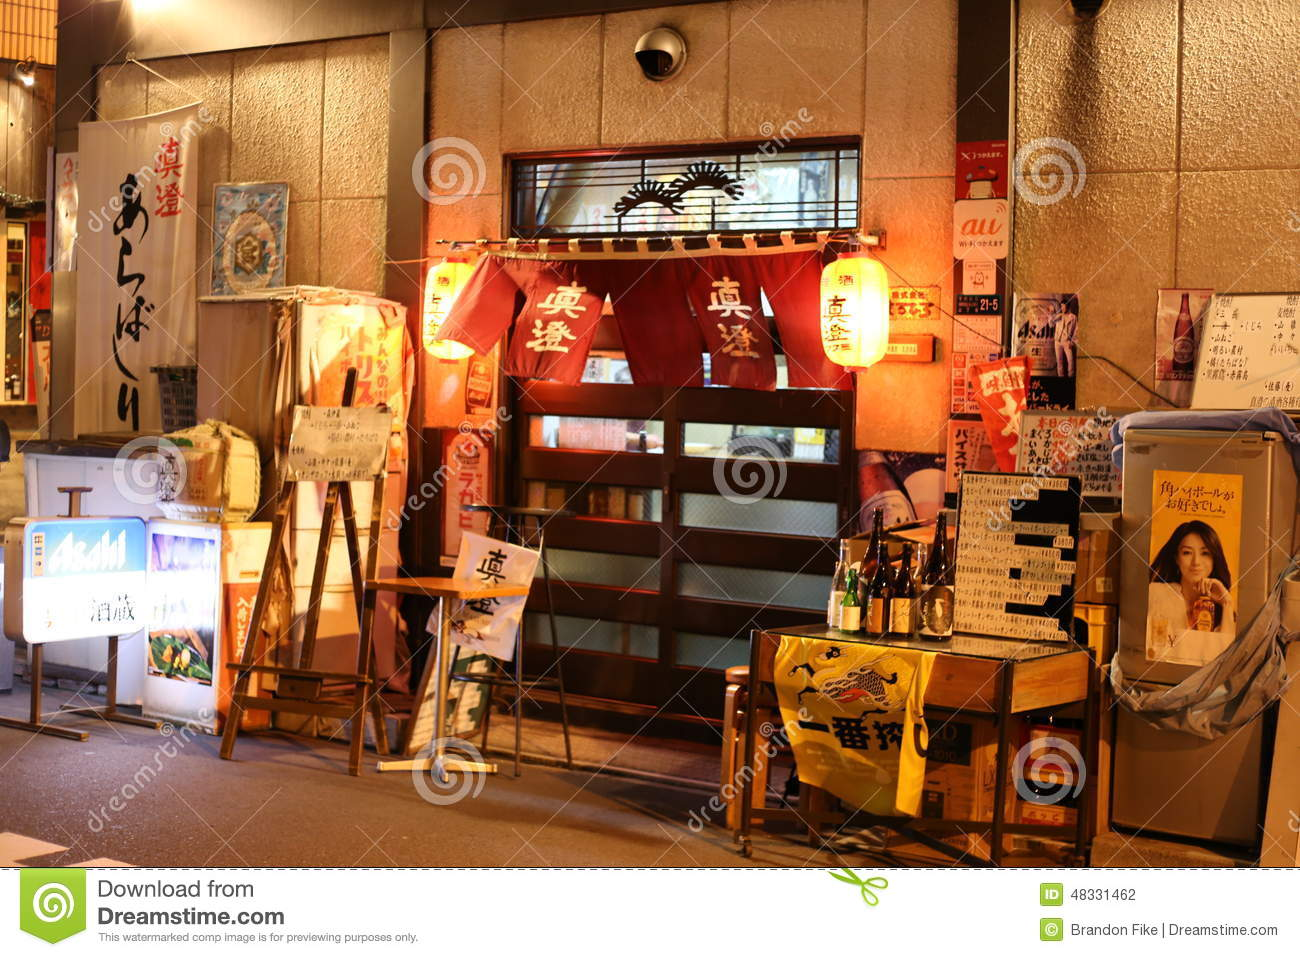 Japanese Restaurant Exterior Editorial Photography Image Of Retail Shopping 48331462